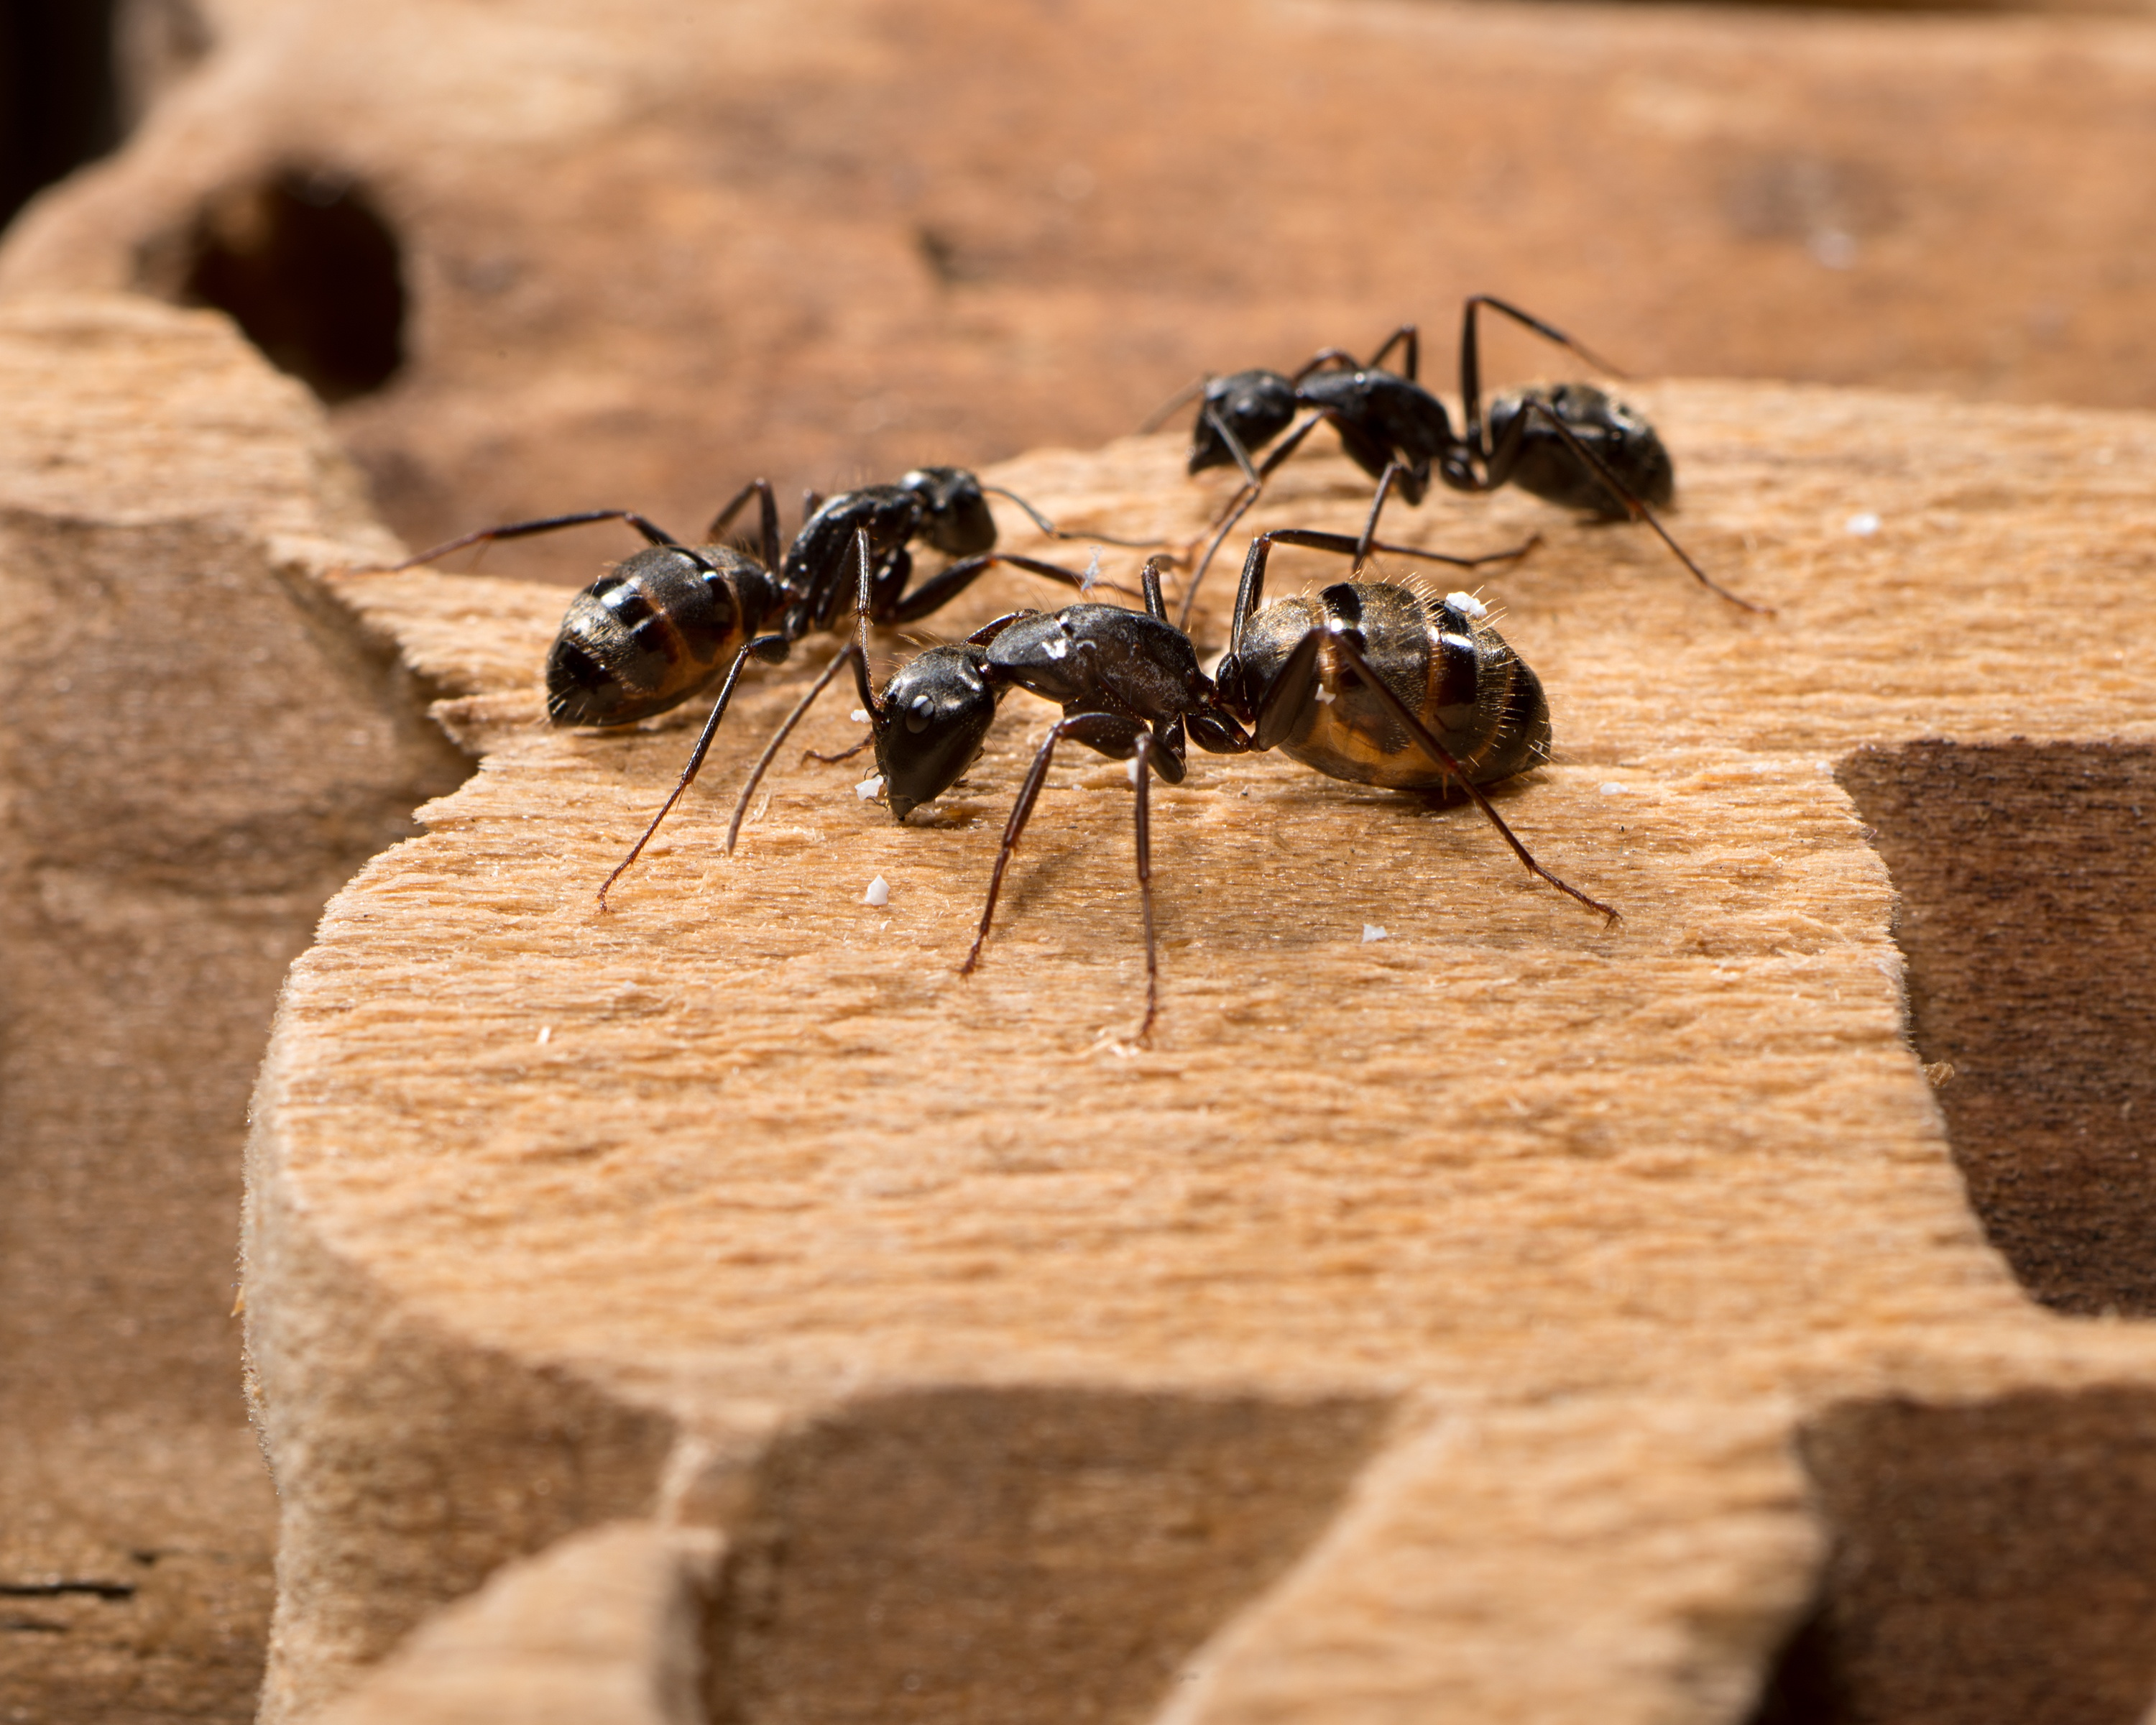 06_Carpenter Ants.jpg